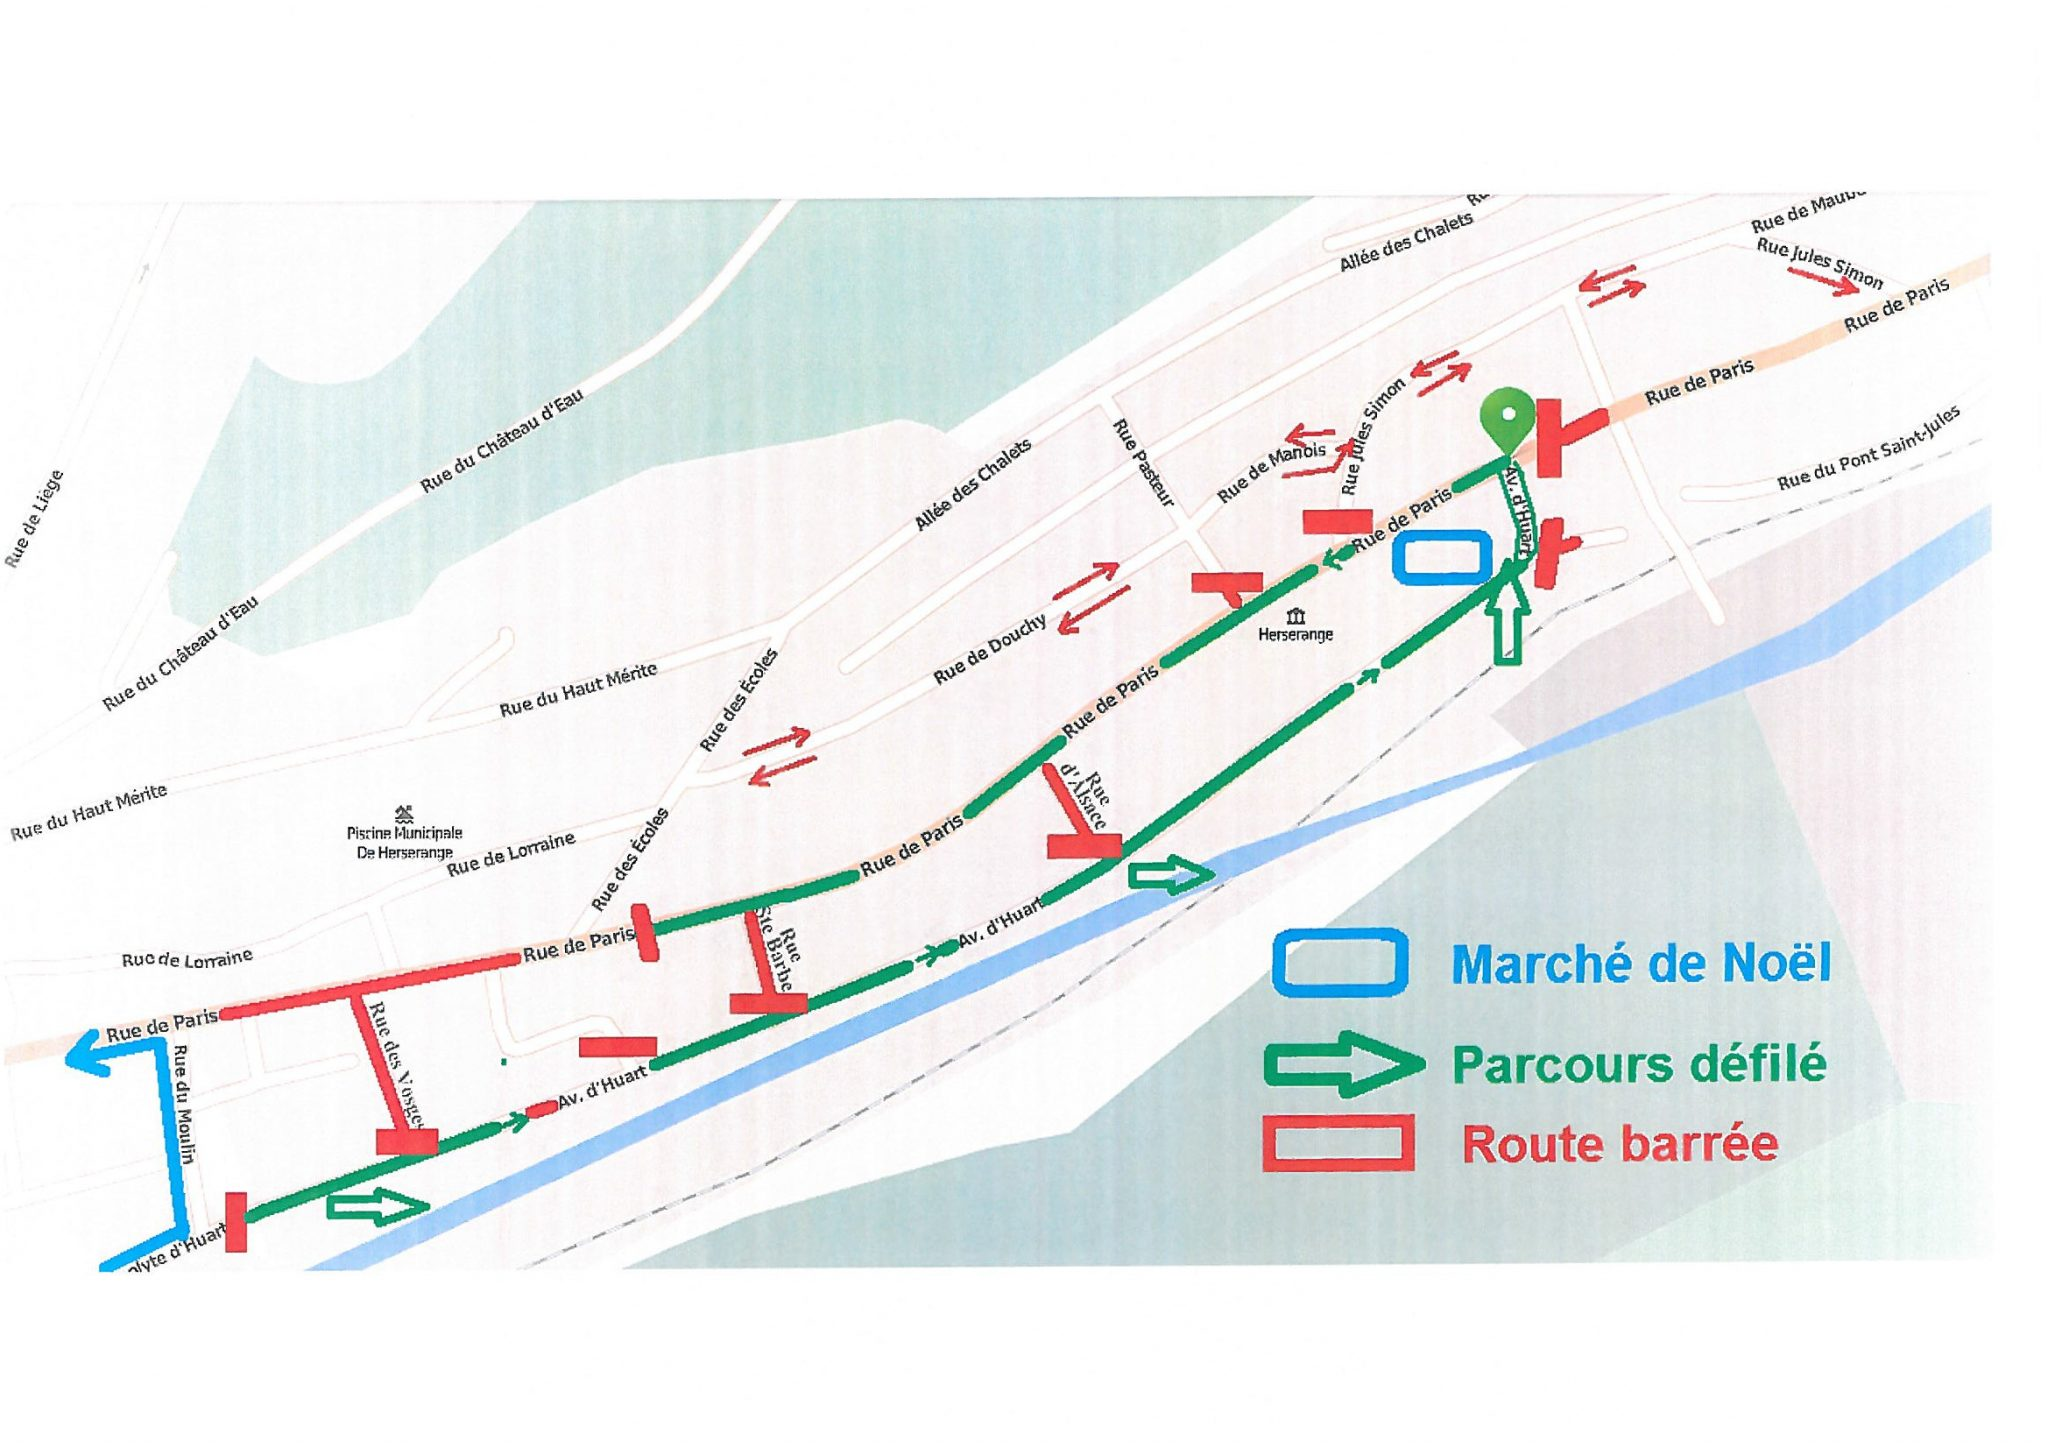 plan-de-circulation-marche-de-noel-2016